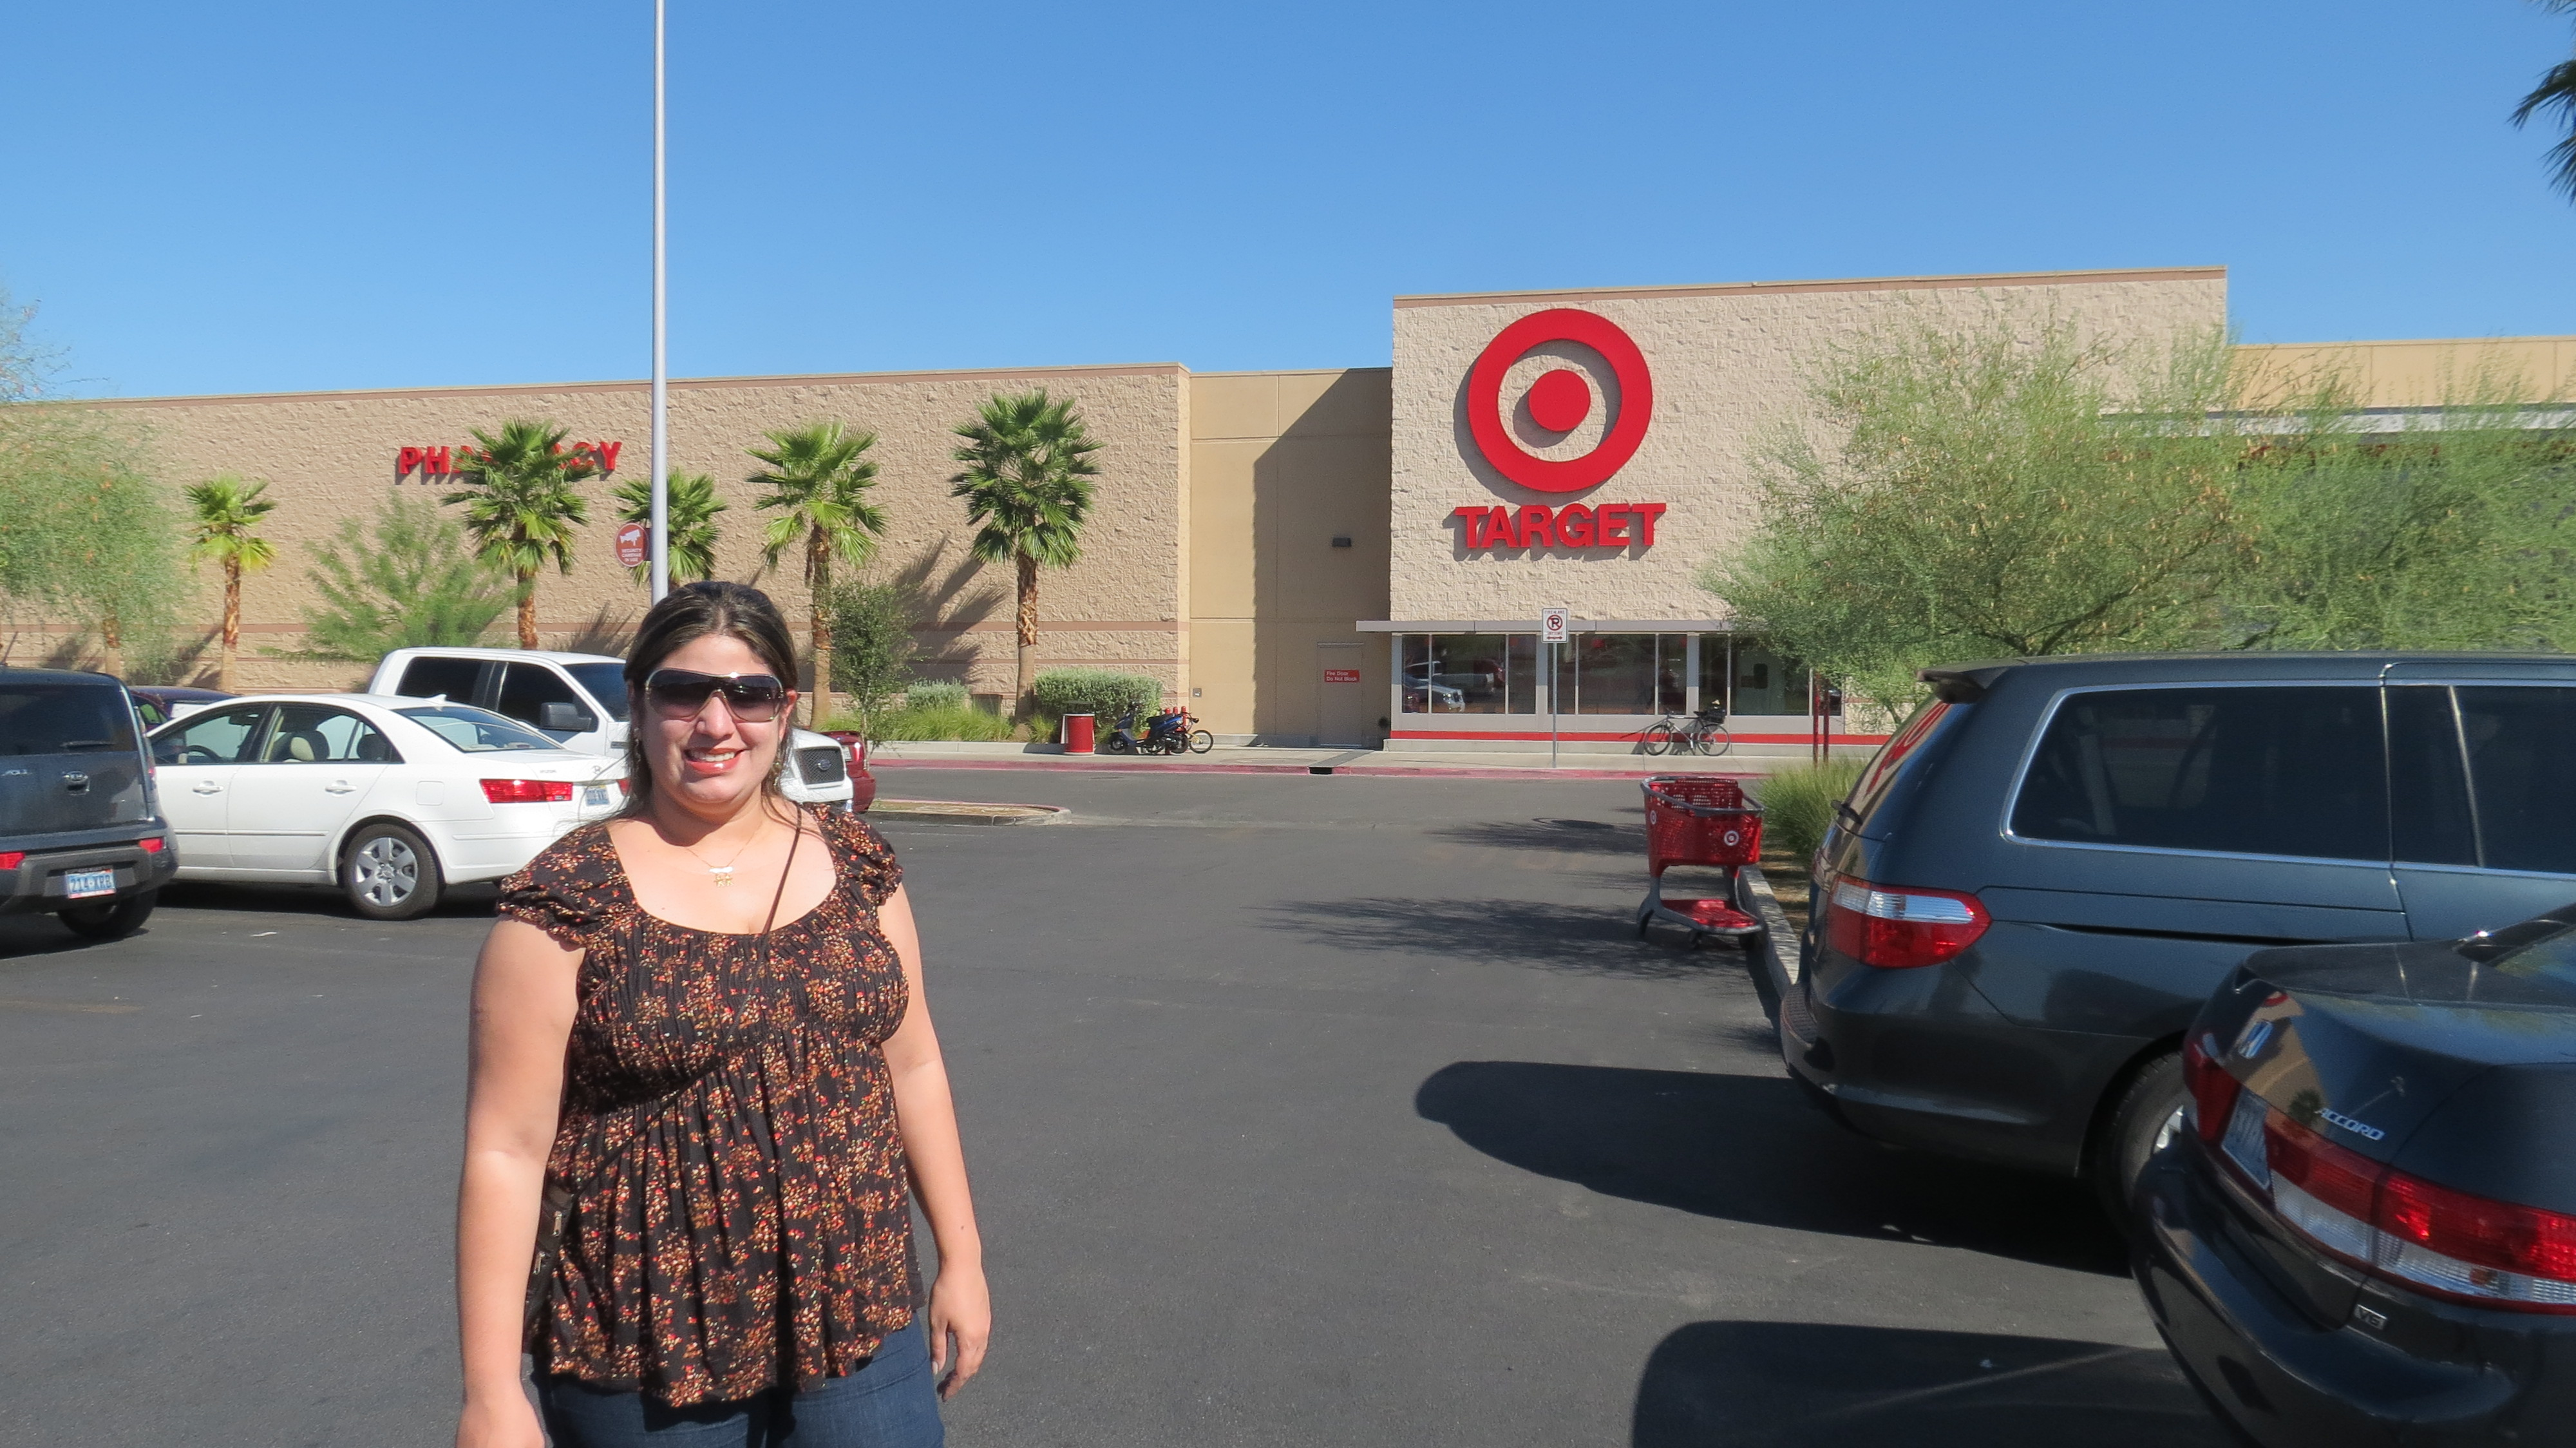 This Target store almost exactly 2 miles away from the Las Vegas Strip at a strip mall called the Maryland Crossing Shopping Center. To be exact, it is .